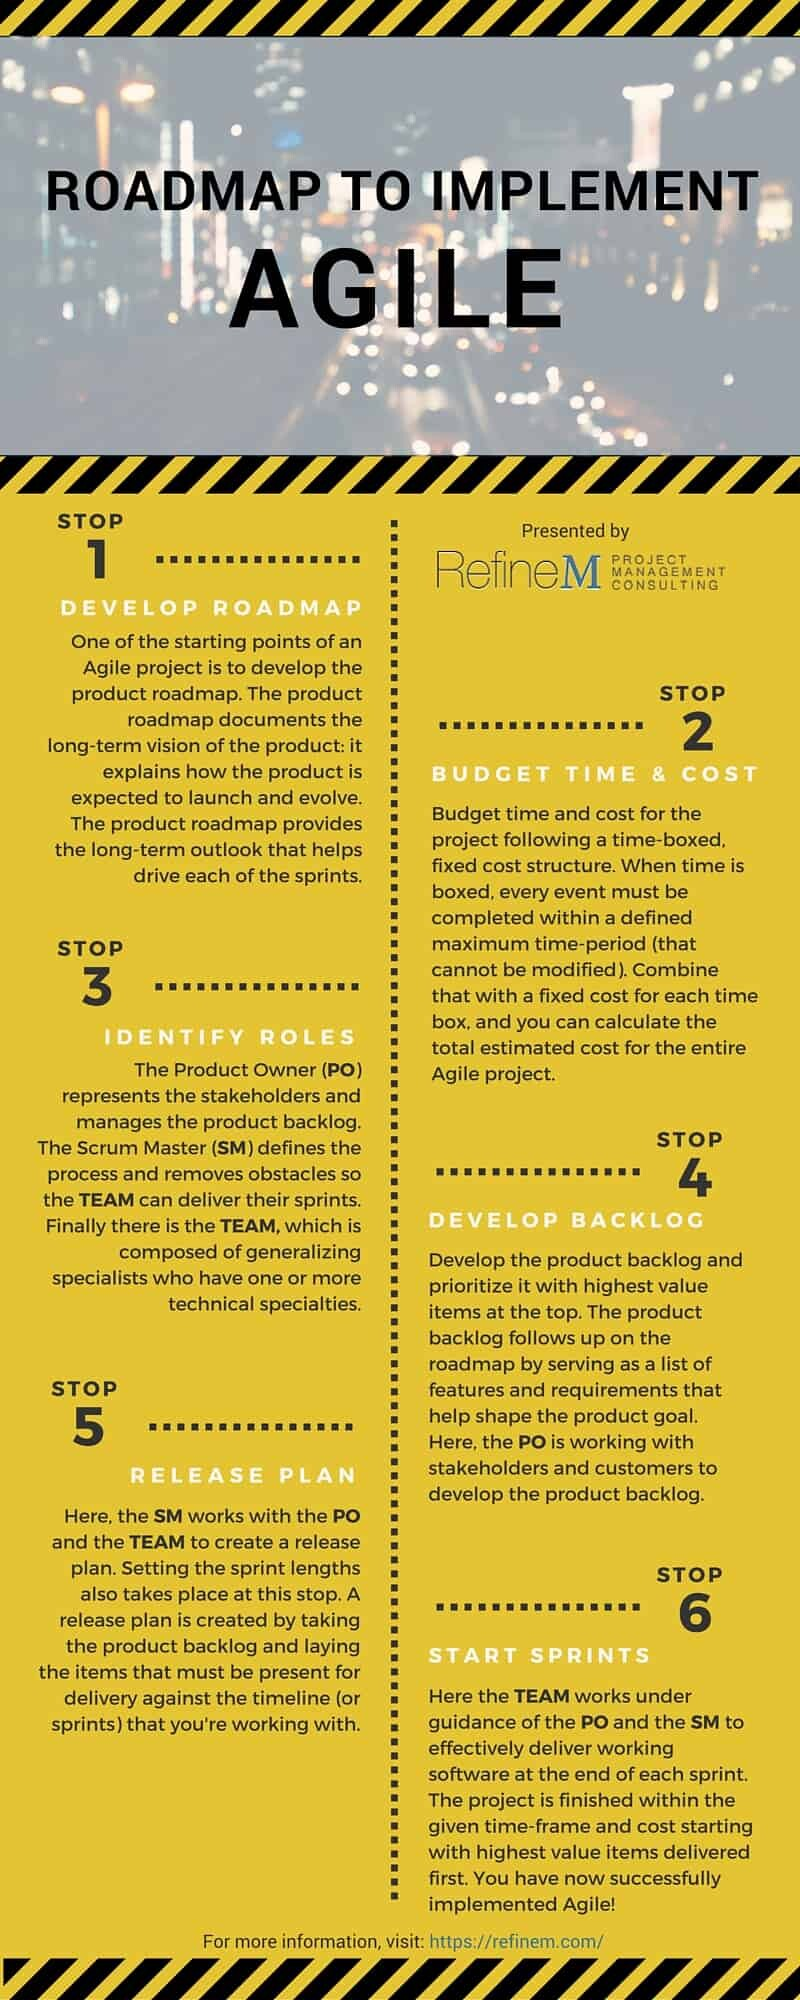 Infographic describing the process to implement Agile.